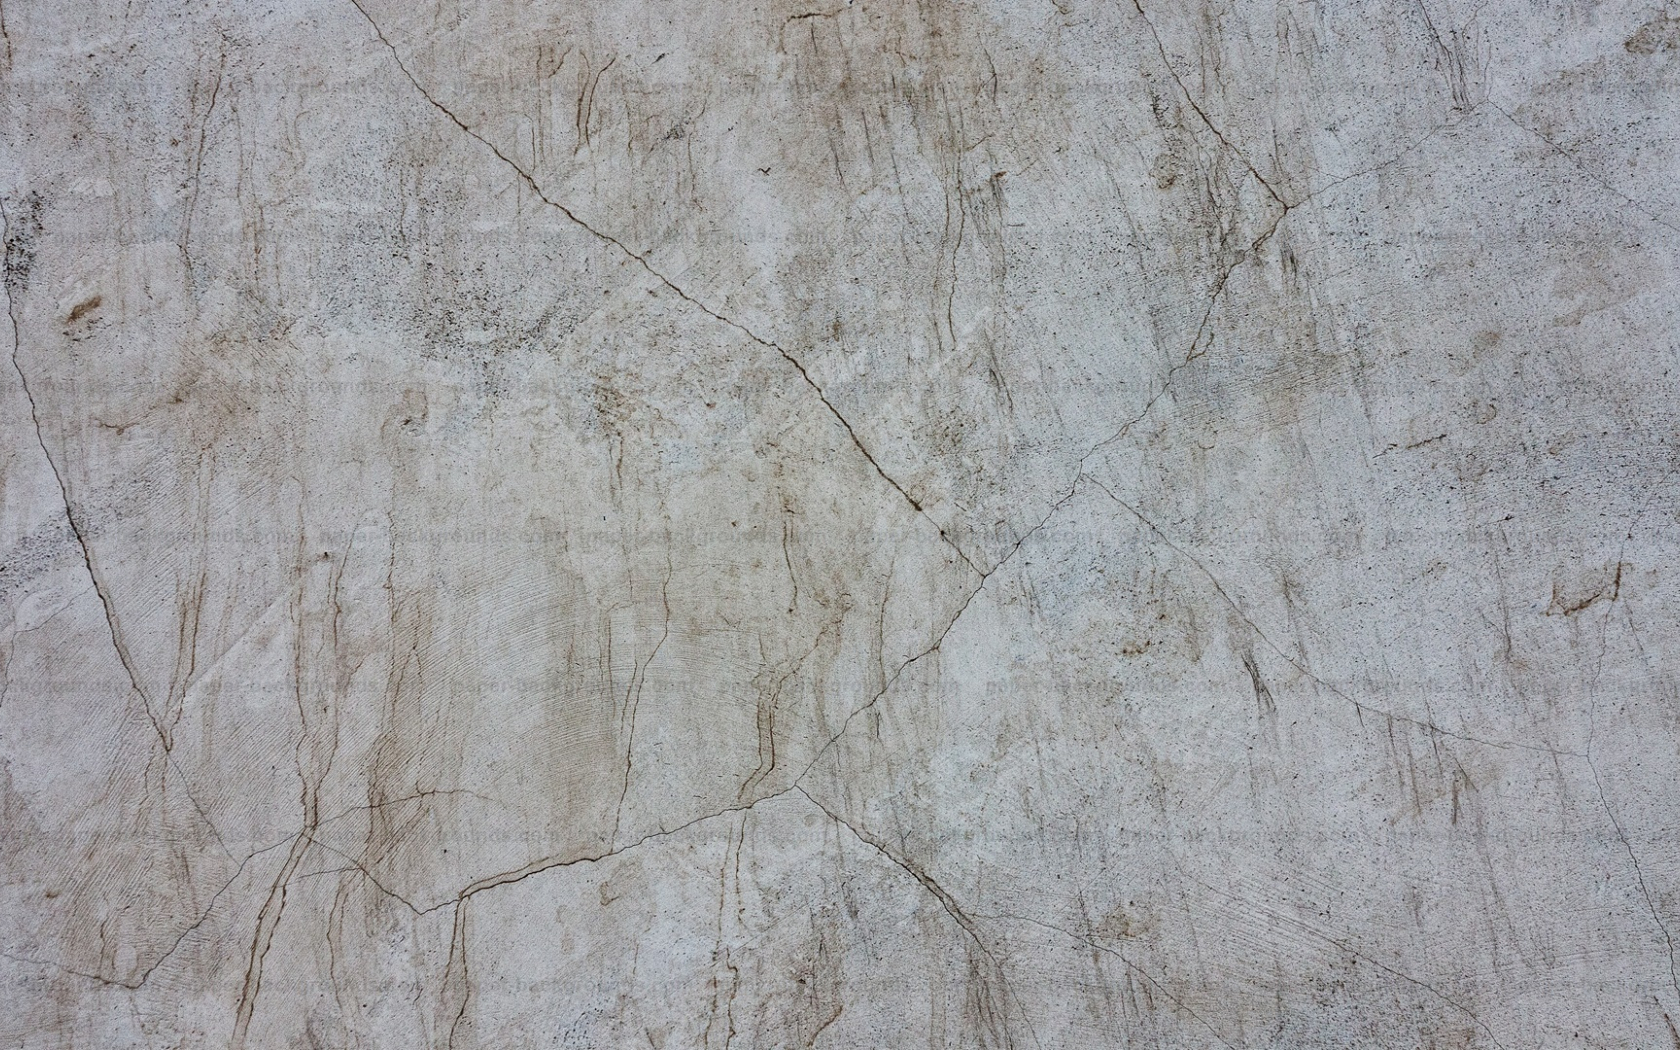 Free Download Cracked Dirty White Marble Wall Background Hd 1920 X